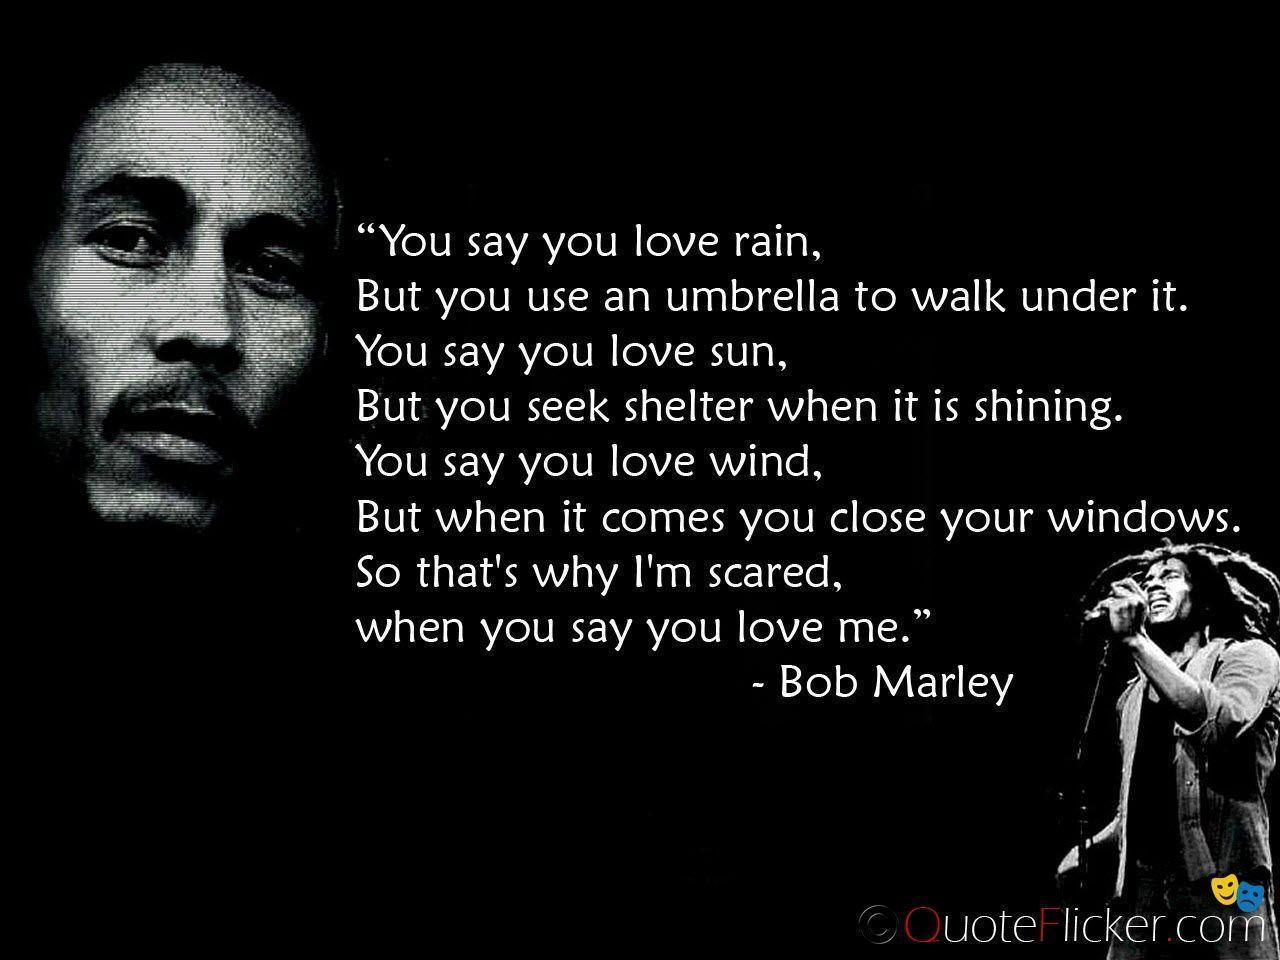 Bob Marley Quotes e Love e Heart e Destiny quotes